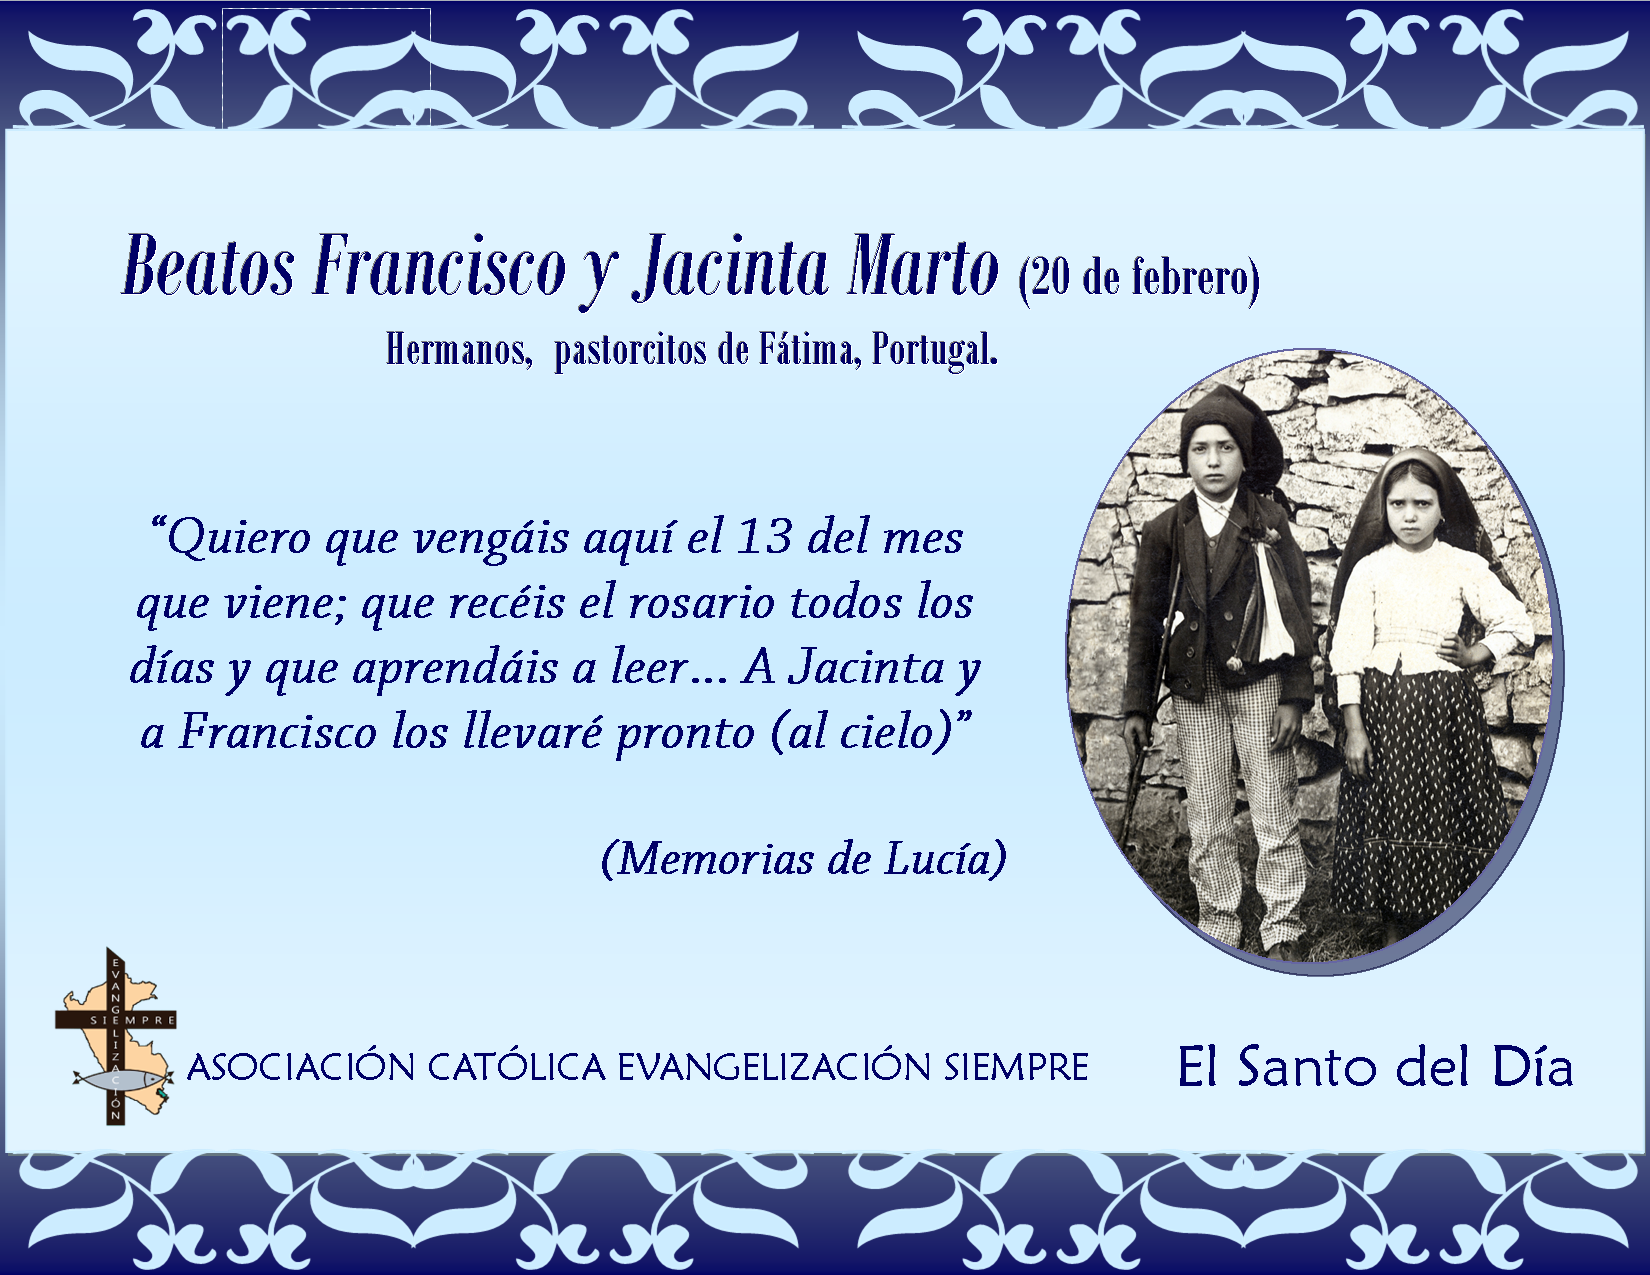 20 febrero Beatos Francisco y Jacinta Marto